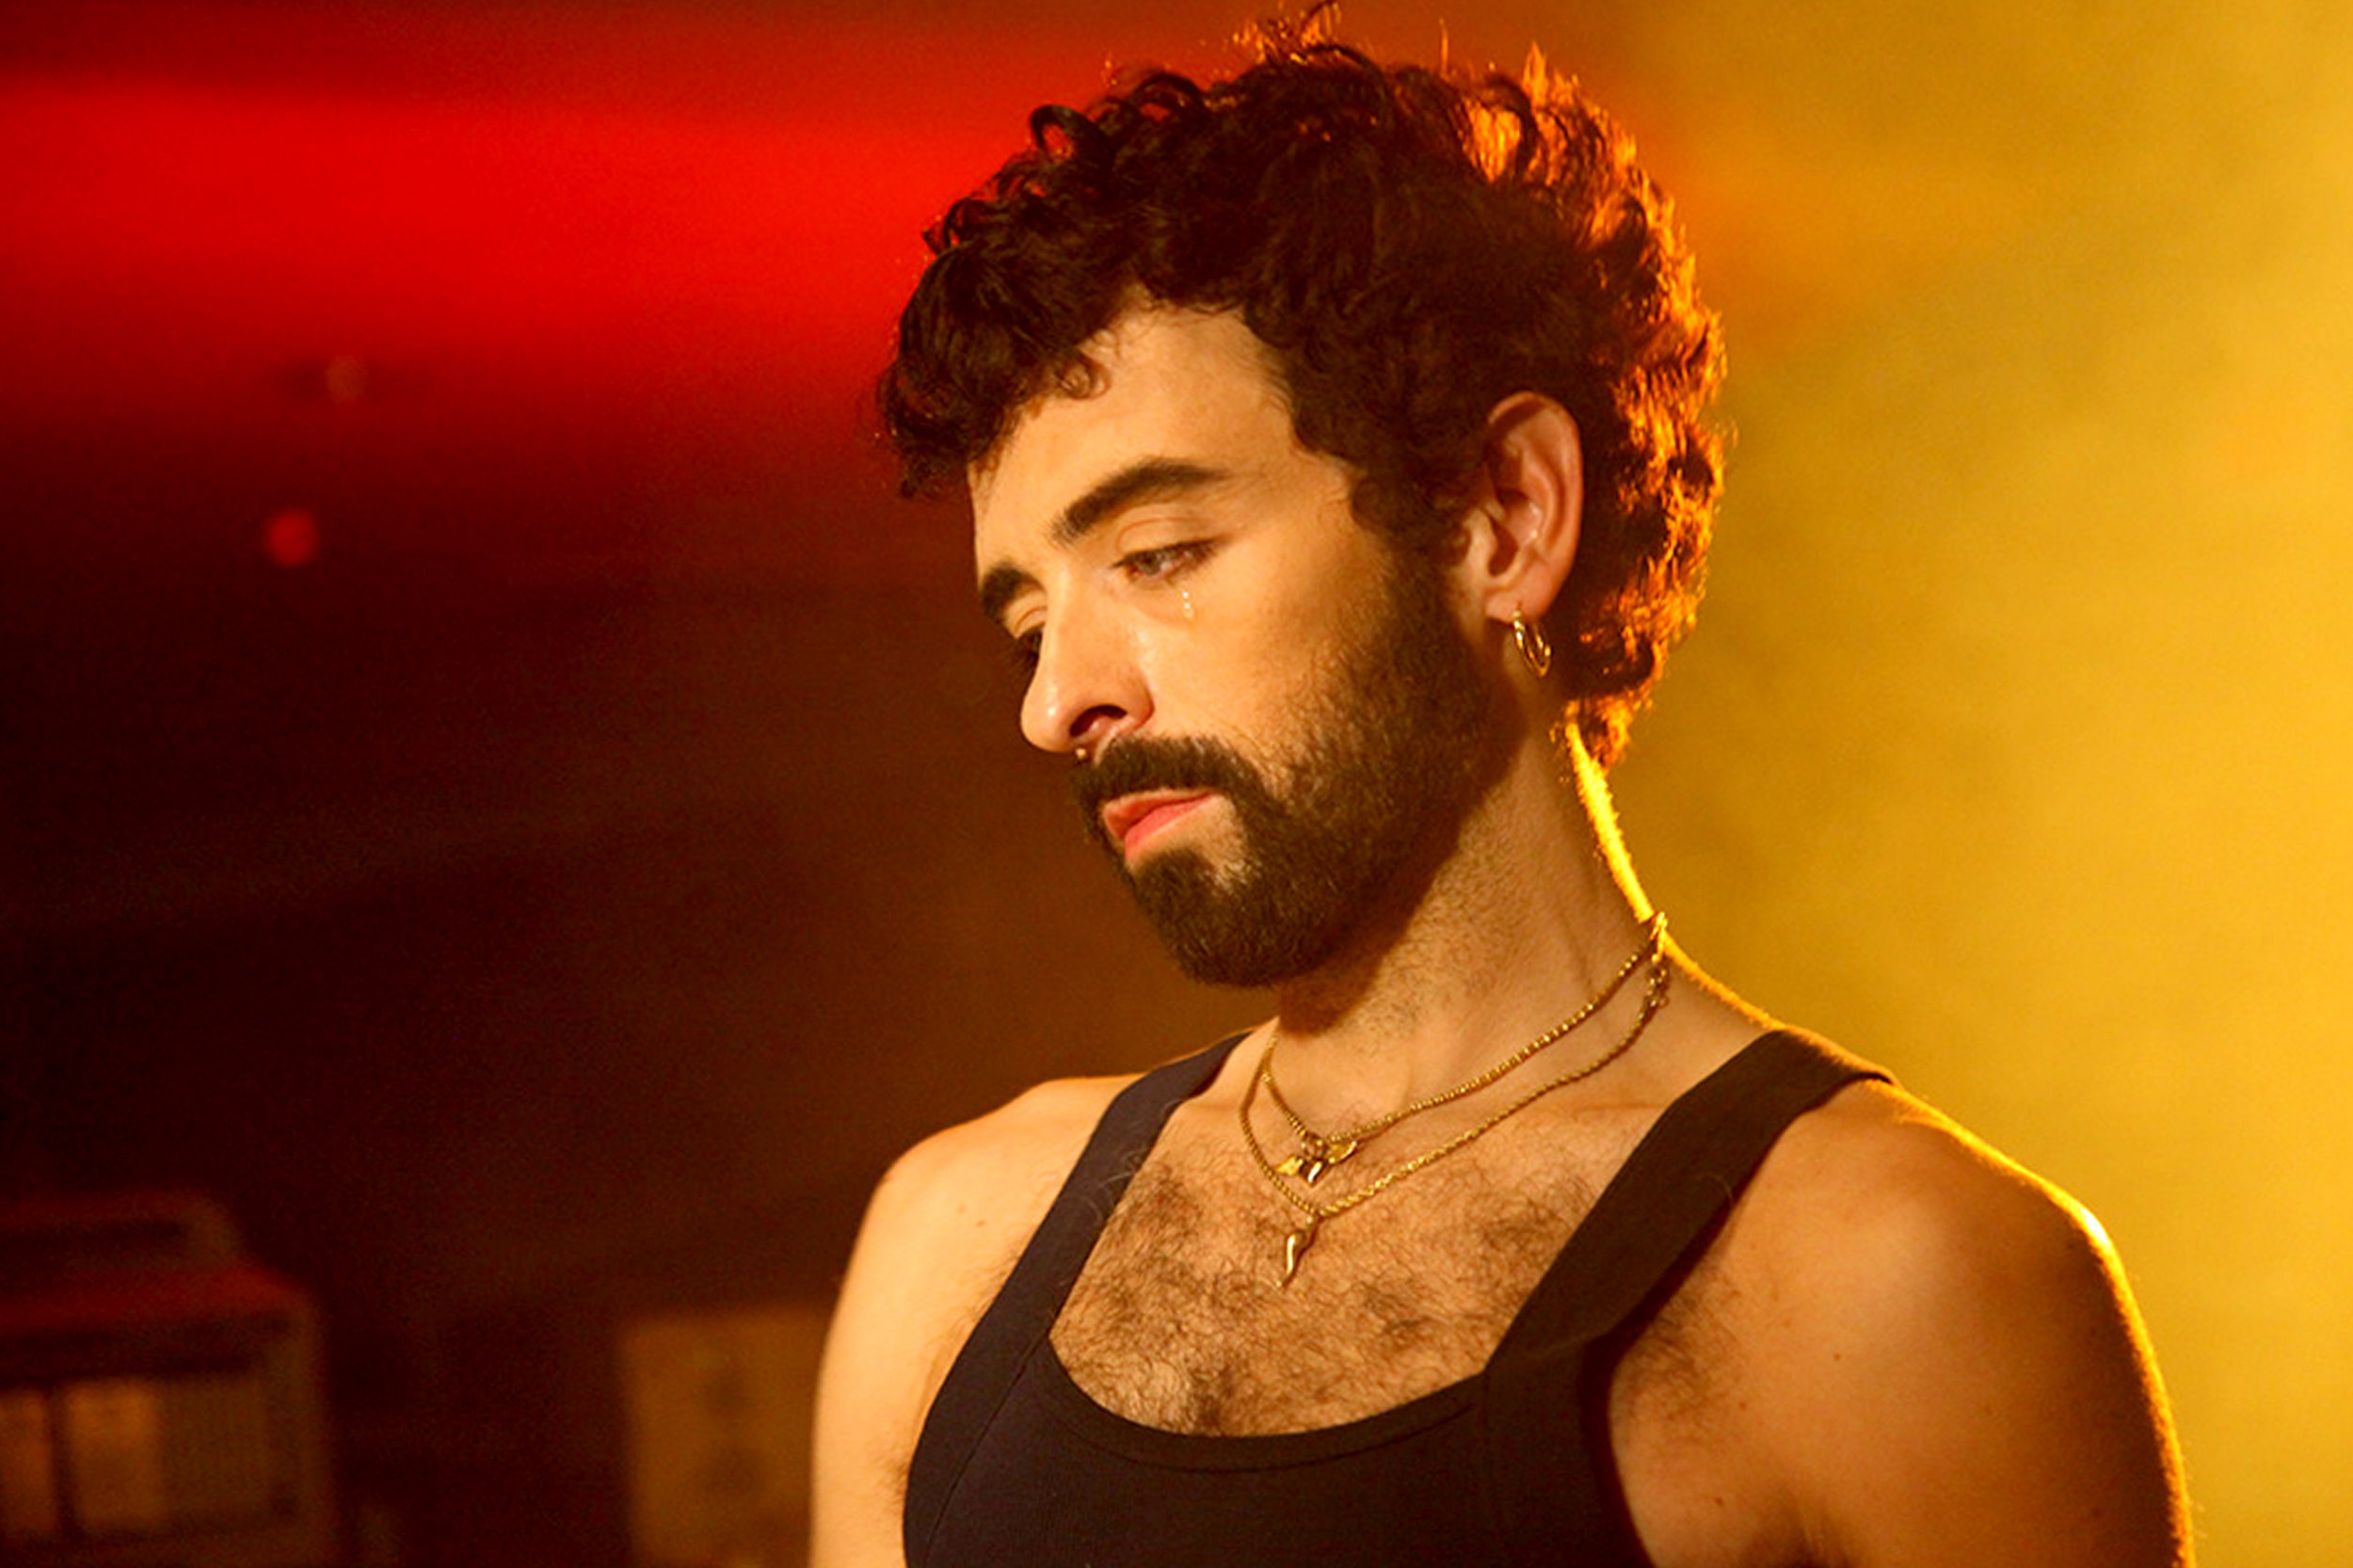 ssion - Cody Critcheloe is a New York City-based songwriter, musician, visual artist, and director. For over a decade, Critcheloe has recorded and toured as the music act SSION—pronounced